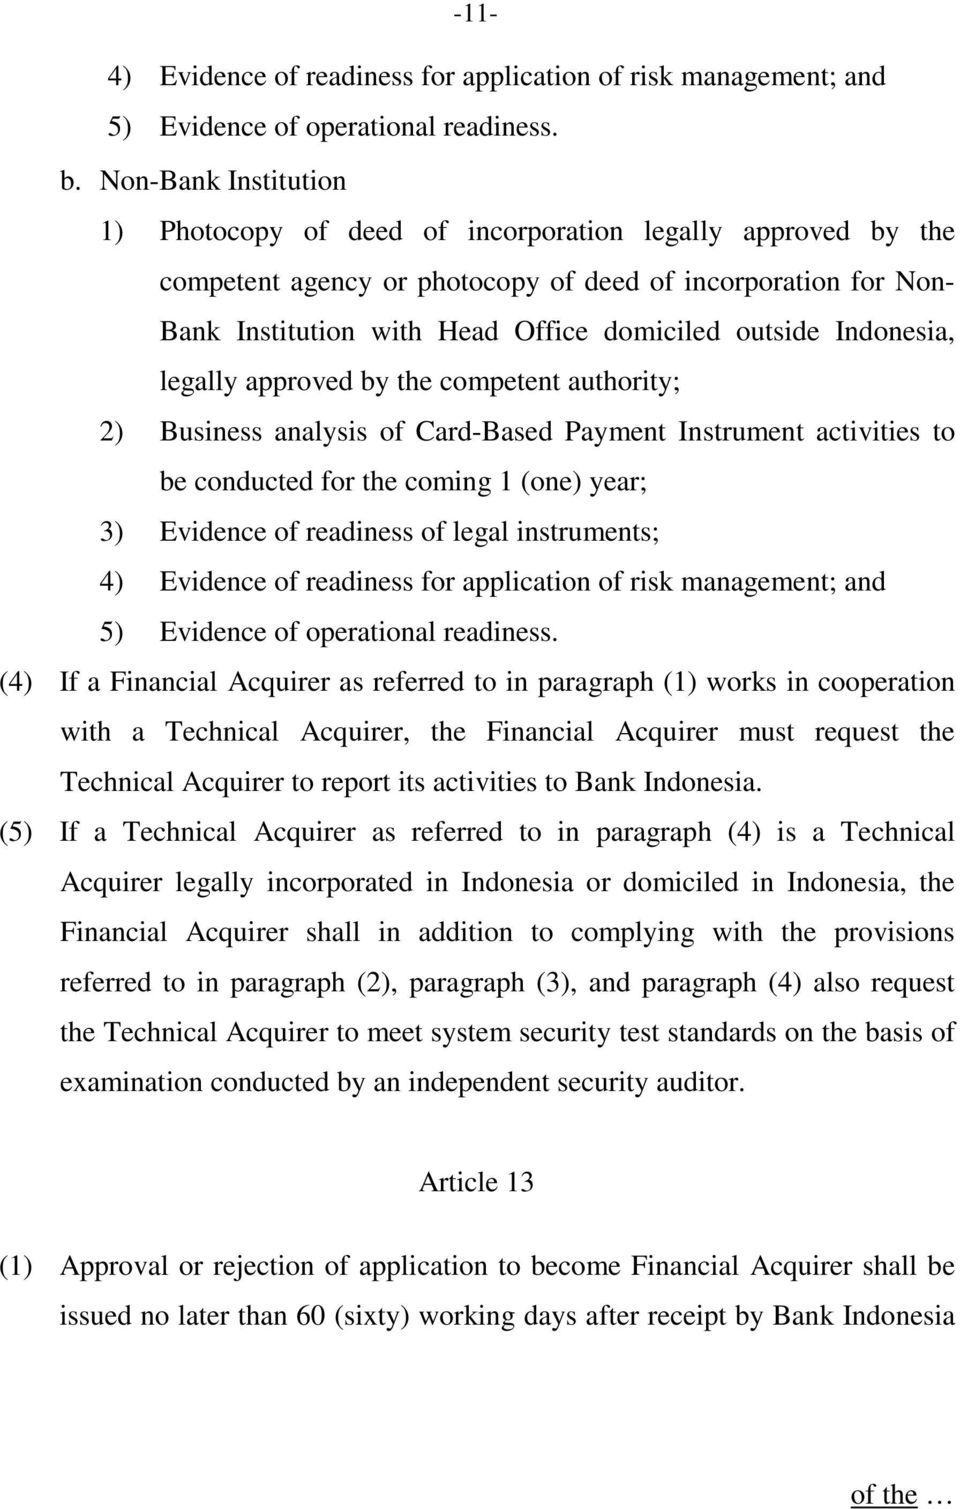 Indonesia, legally approved by the competent authority; 2) Business analysis of Card-Based Payment Instrument activities to be conducted for the coming 1 (one) year; 3) Evidence of readiness of legal